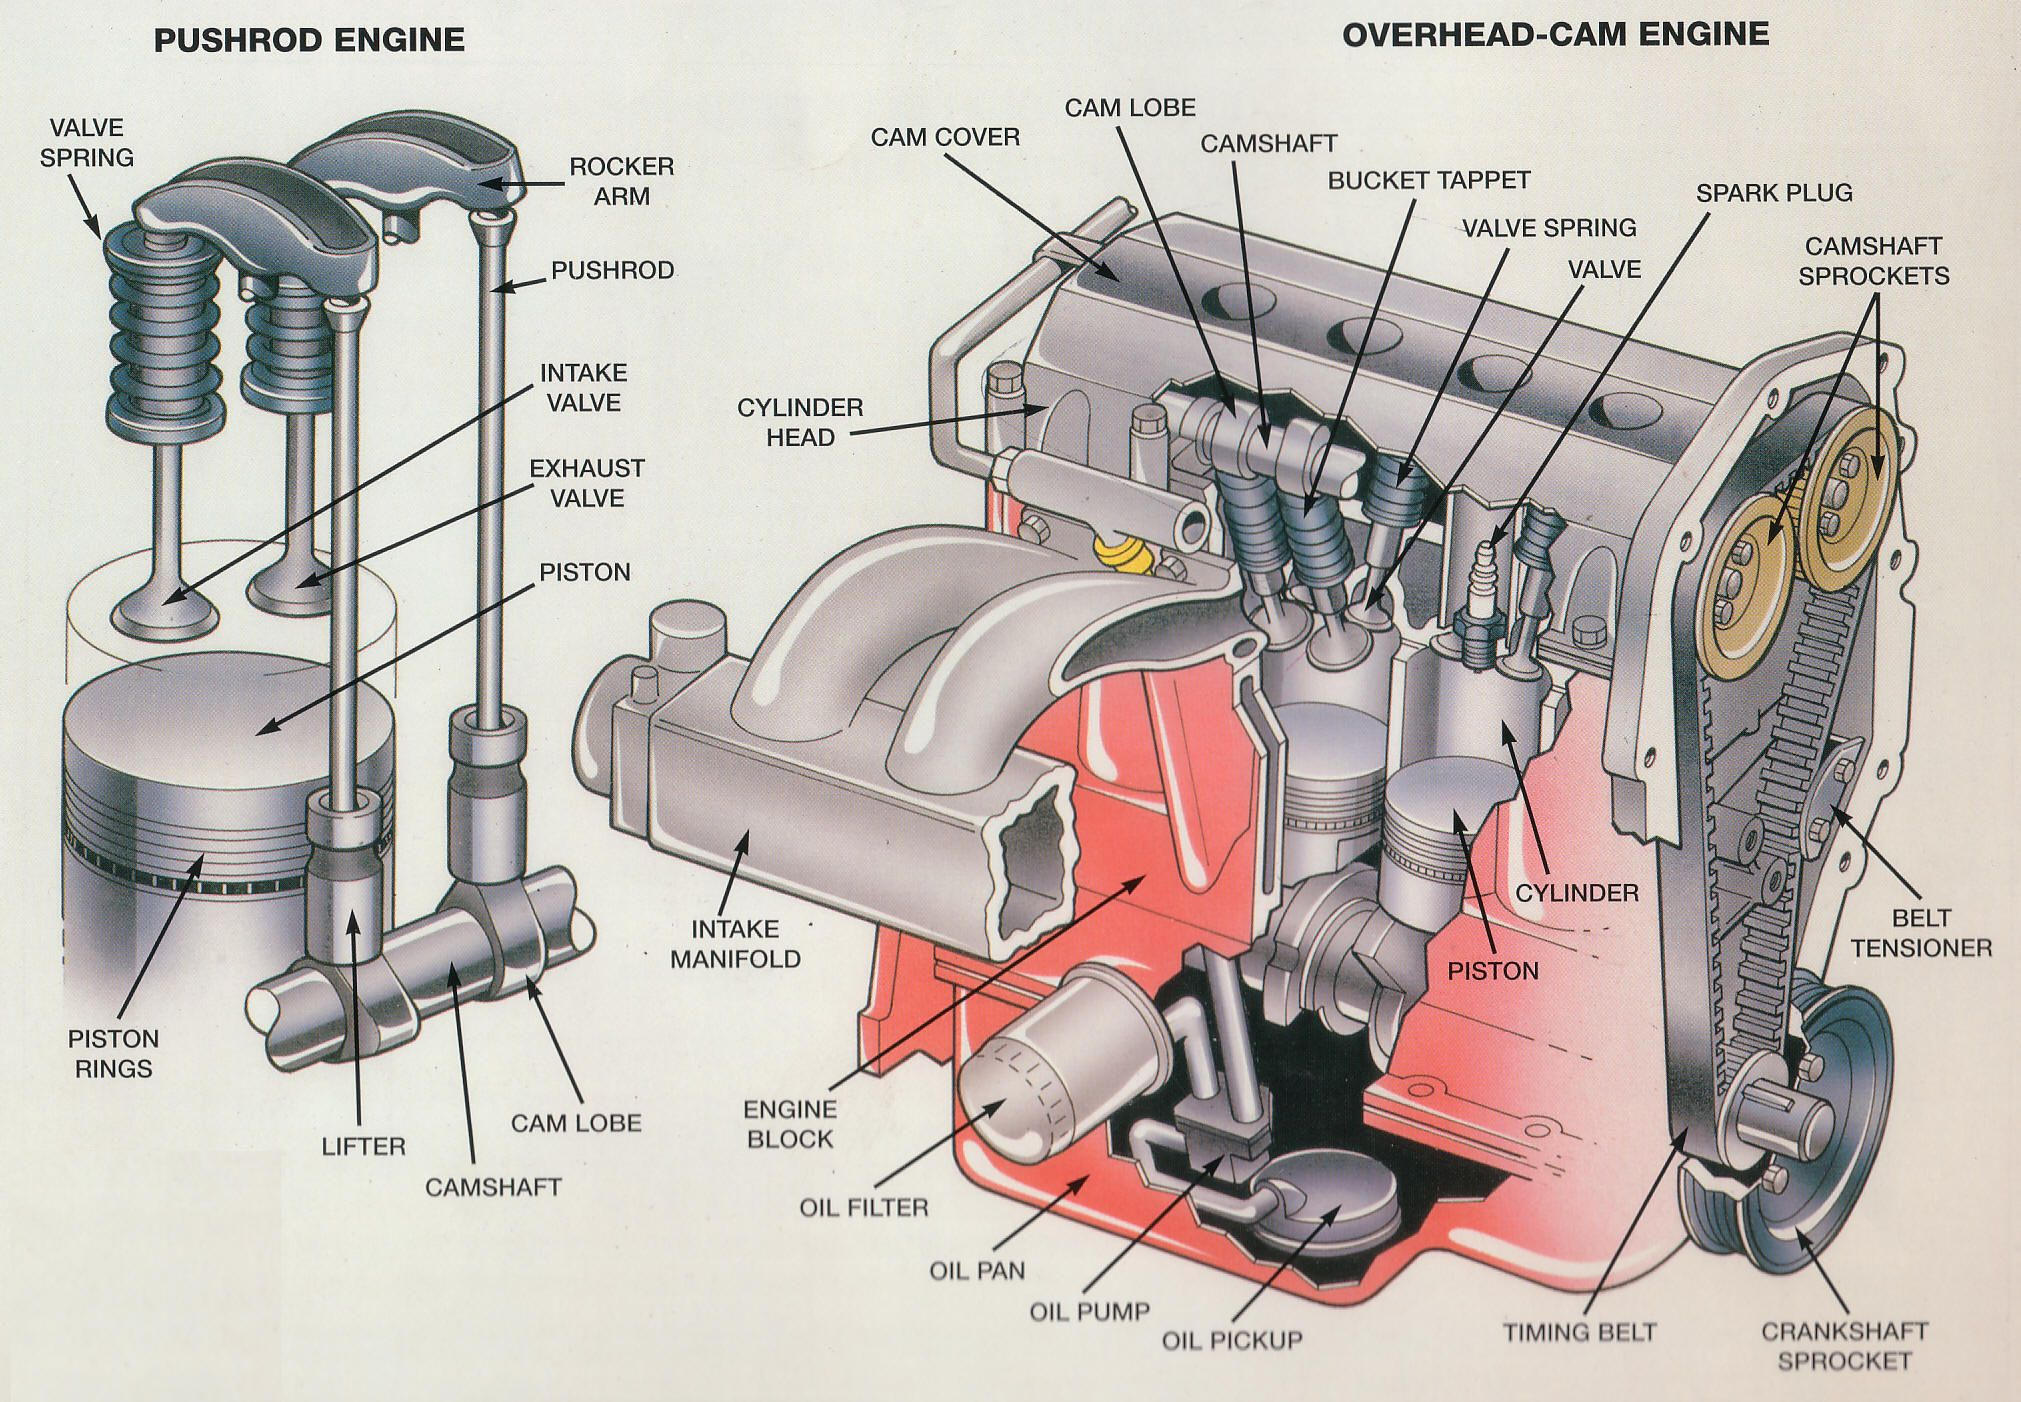 six stroke engine diagram 2009 yamaha raptor 700r wiring internal combustion exploded view google search